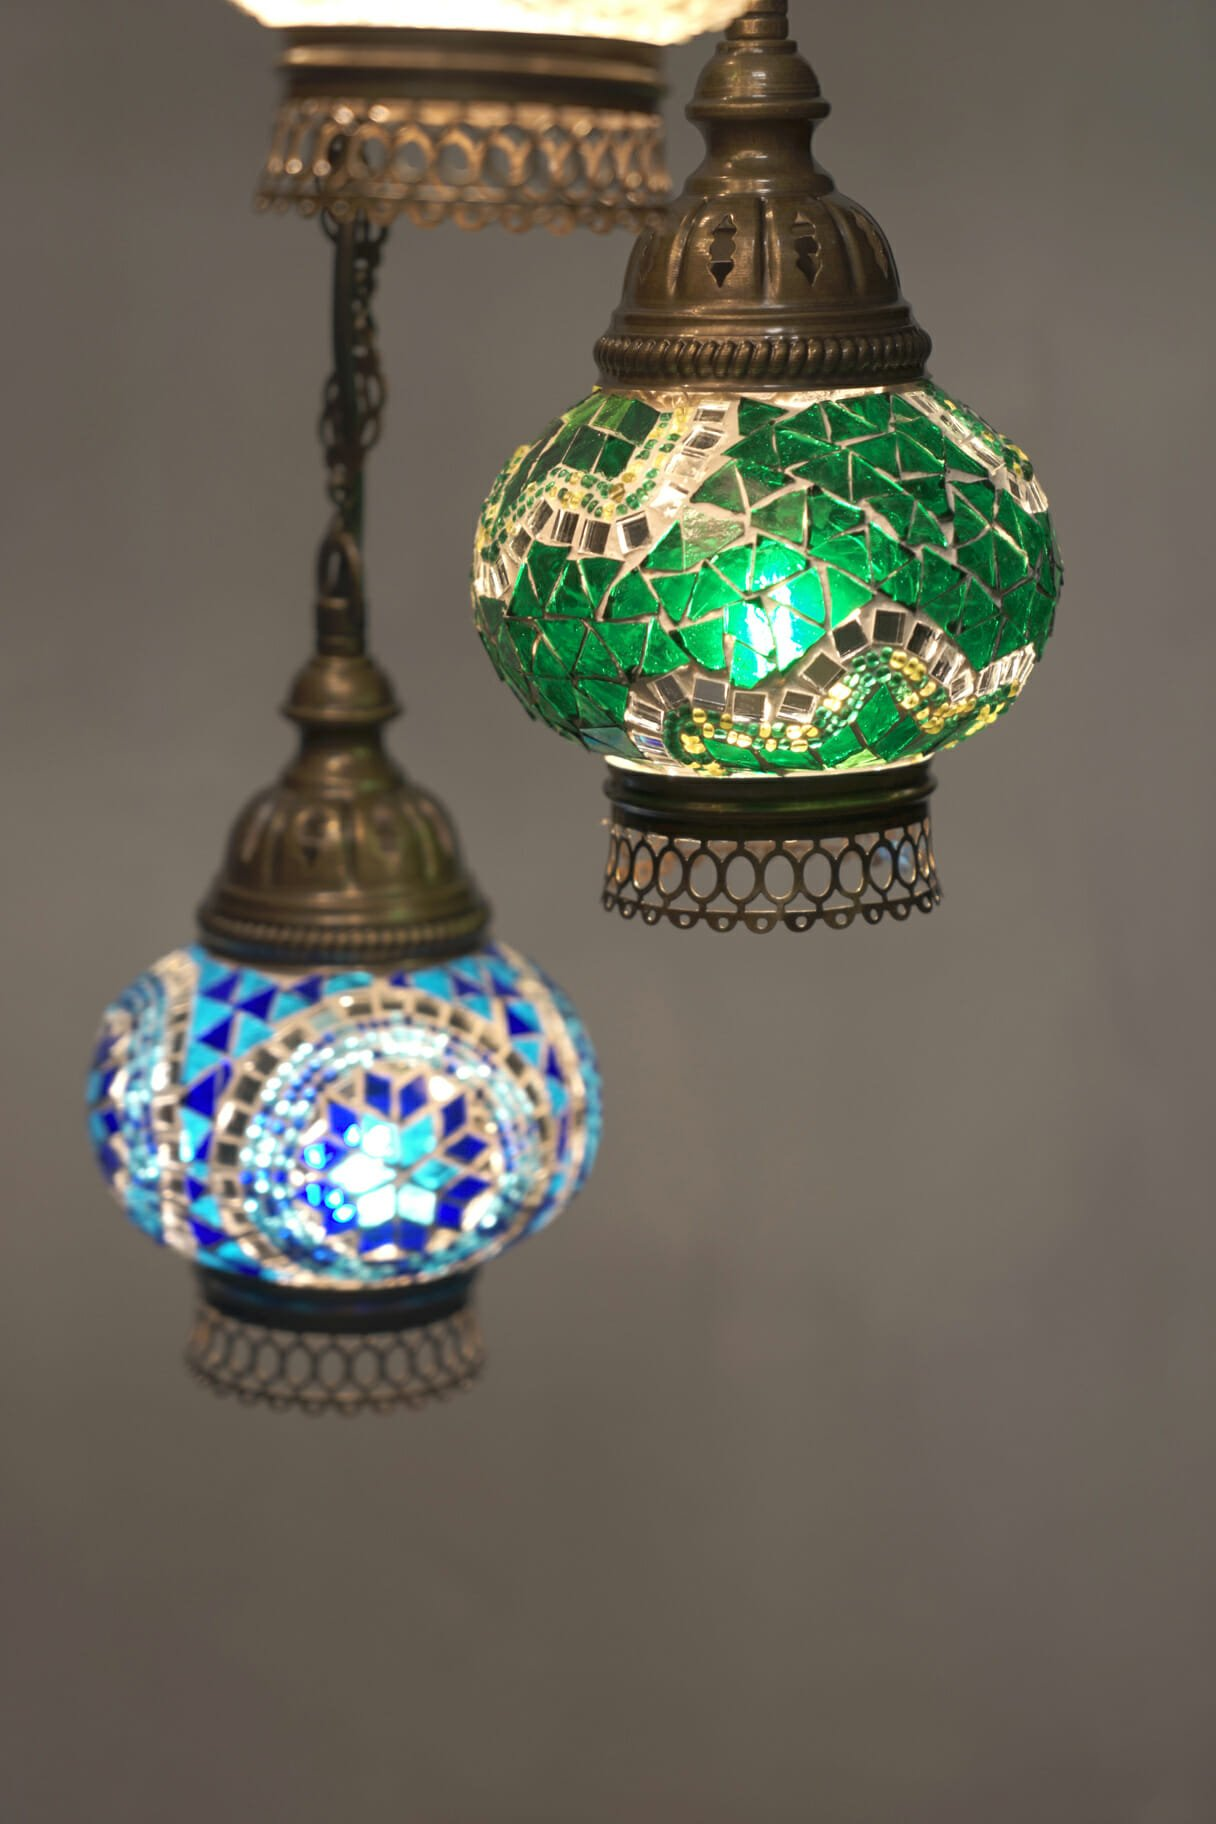 Highest quality mosaic chandeliers turkish lights 5 piece mixed colour mosaic chandelier turkish moroccan mosaic chandelier 5 piece spiral green globe aloadofball Images